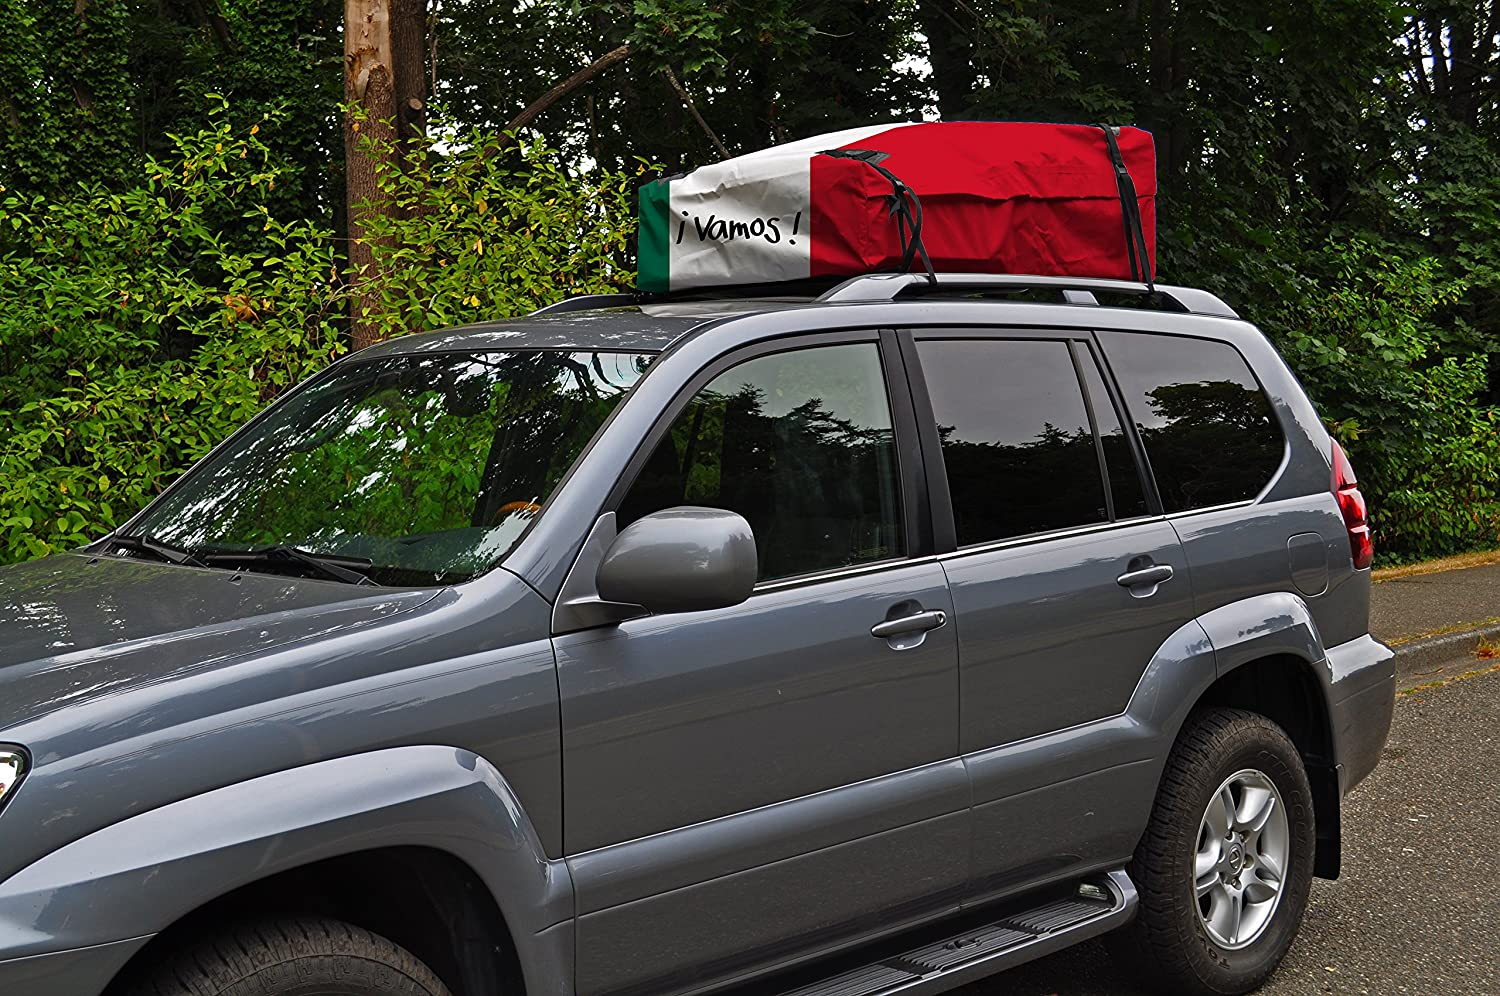 Kanga Waterproof Rooftop Cargo Carrier Storage Roof Bag Canada Flag, Mexico Flag, American Flag, and Woodstock Universal Fit Available in 4 Unique Styles - 14 Cubic feet Capacity Built in USA